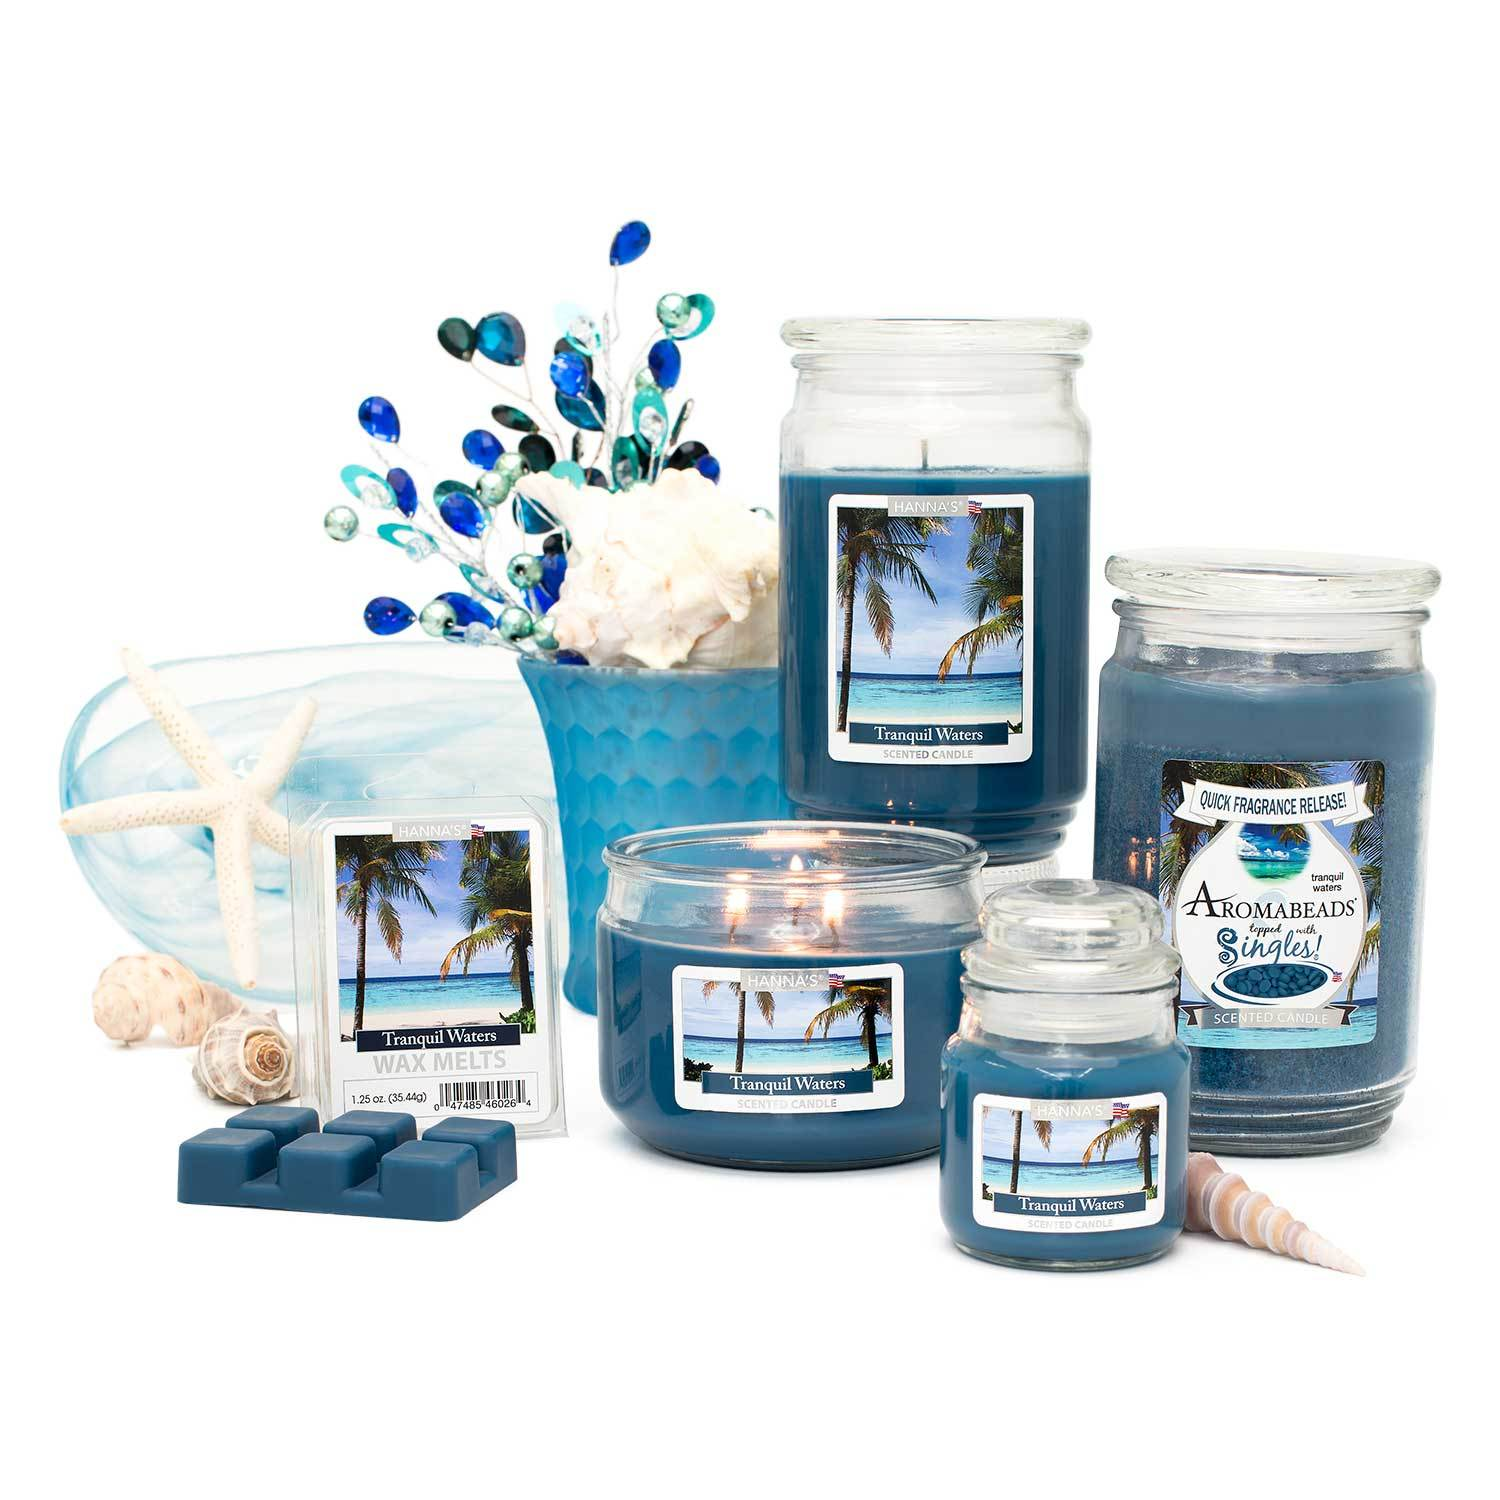 Tranquil Waters Scented 3 wick Candle Candles Candlemart.com $ 7.99